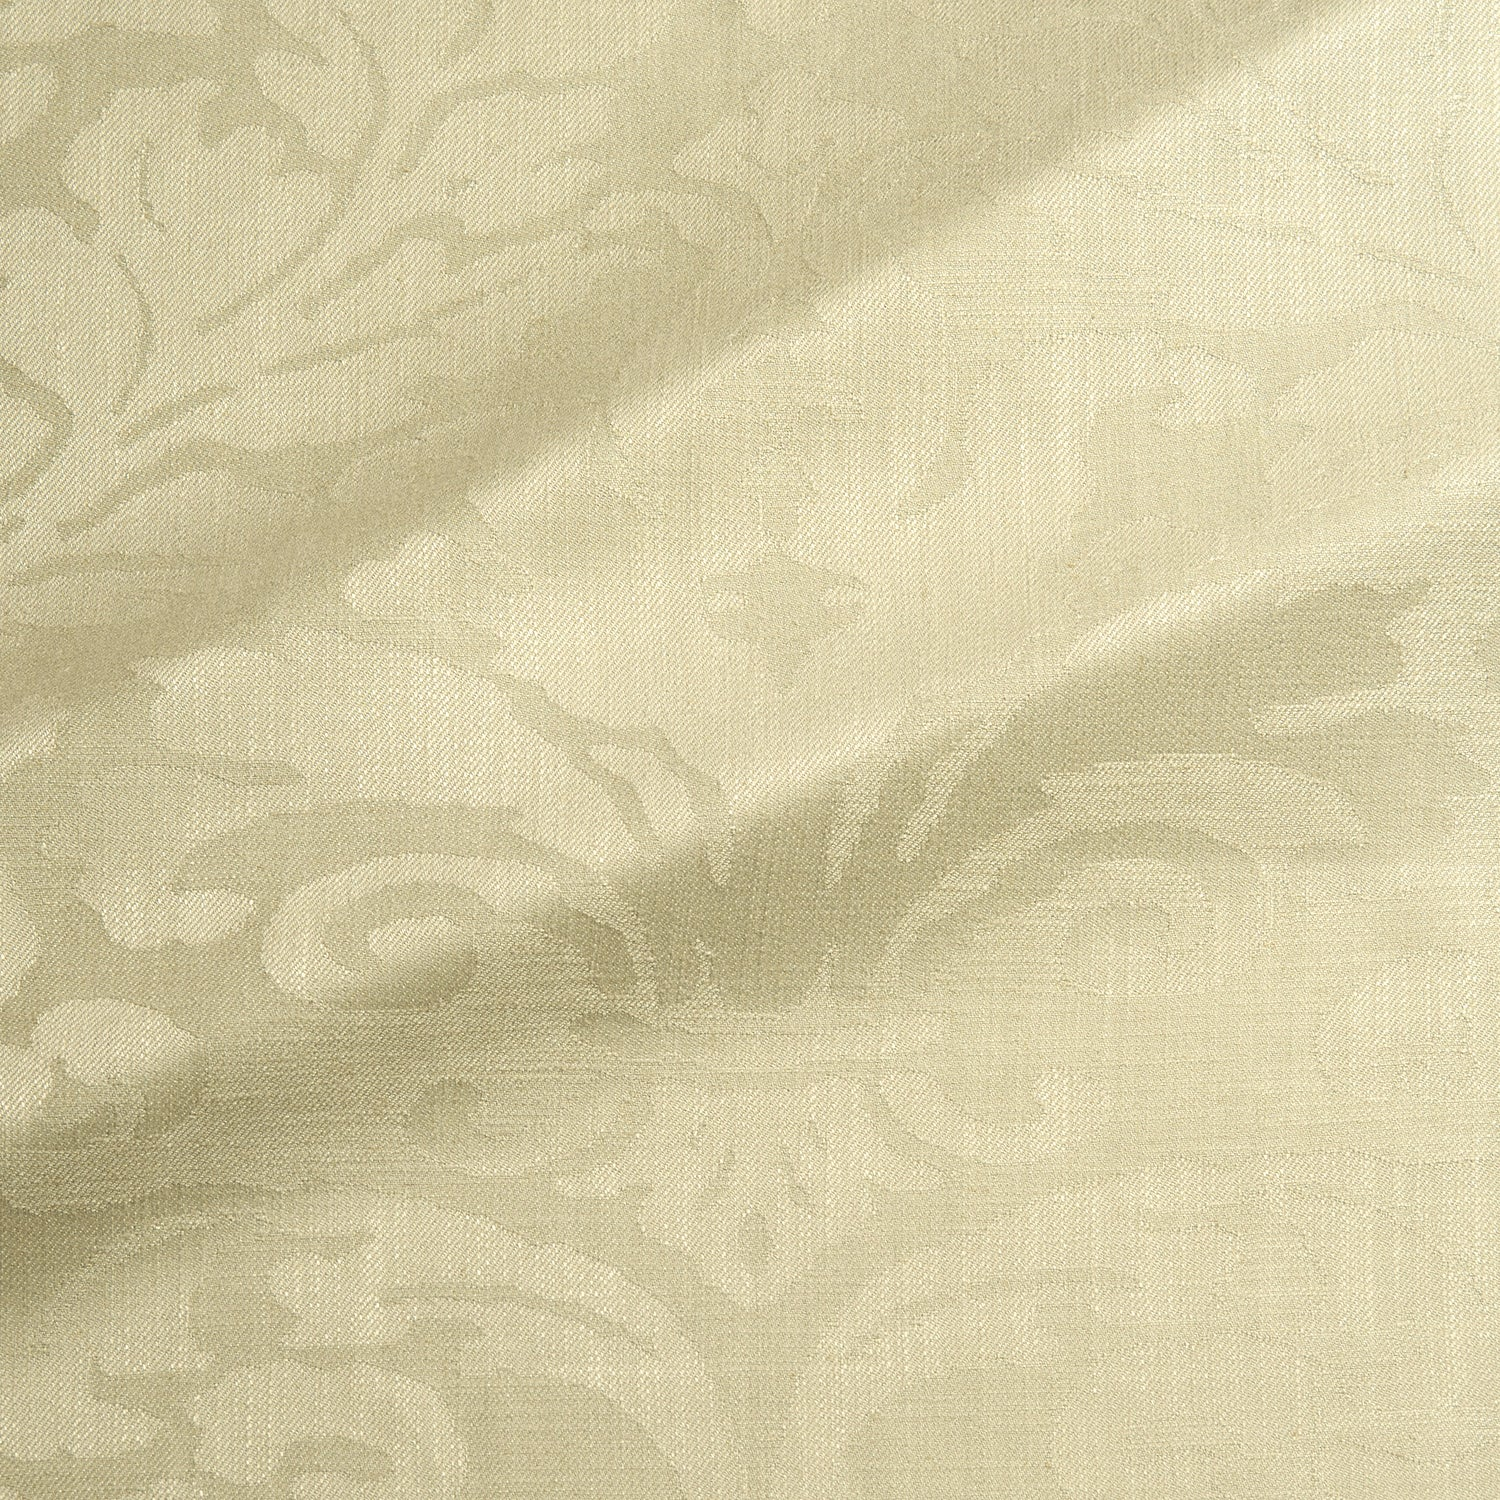 Fabric swatch of a contemporary damask fabric in a light green colour